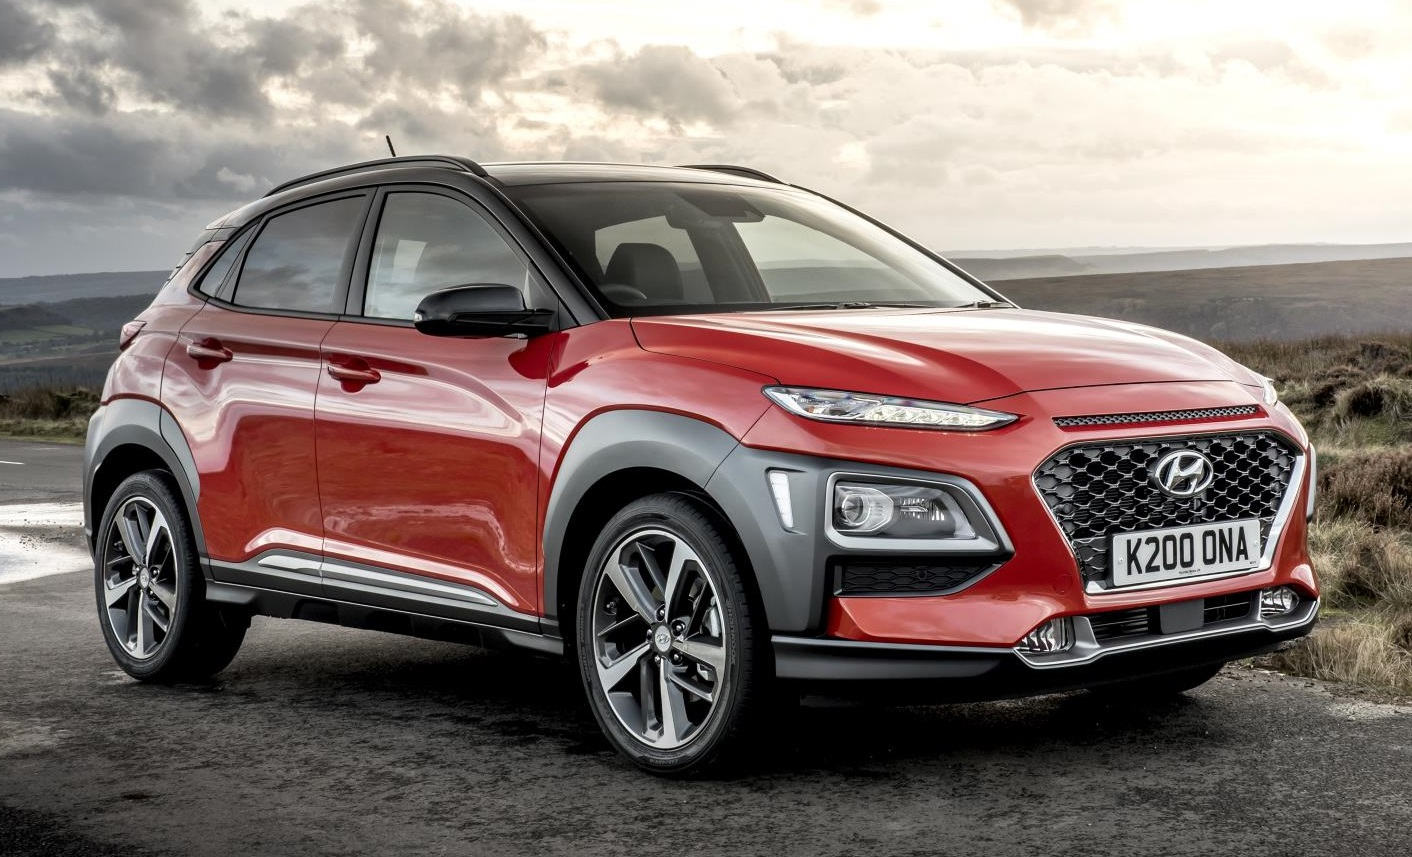 hyundai kona diesel pricing and specs announced uk. Black Bedroom Furniture Sets. Home Design Ideas